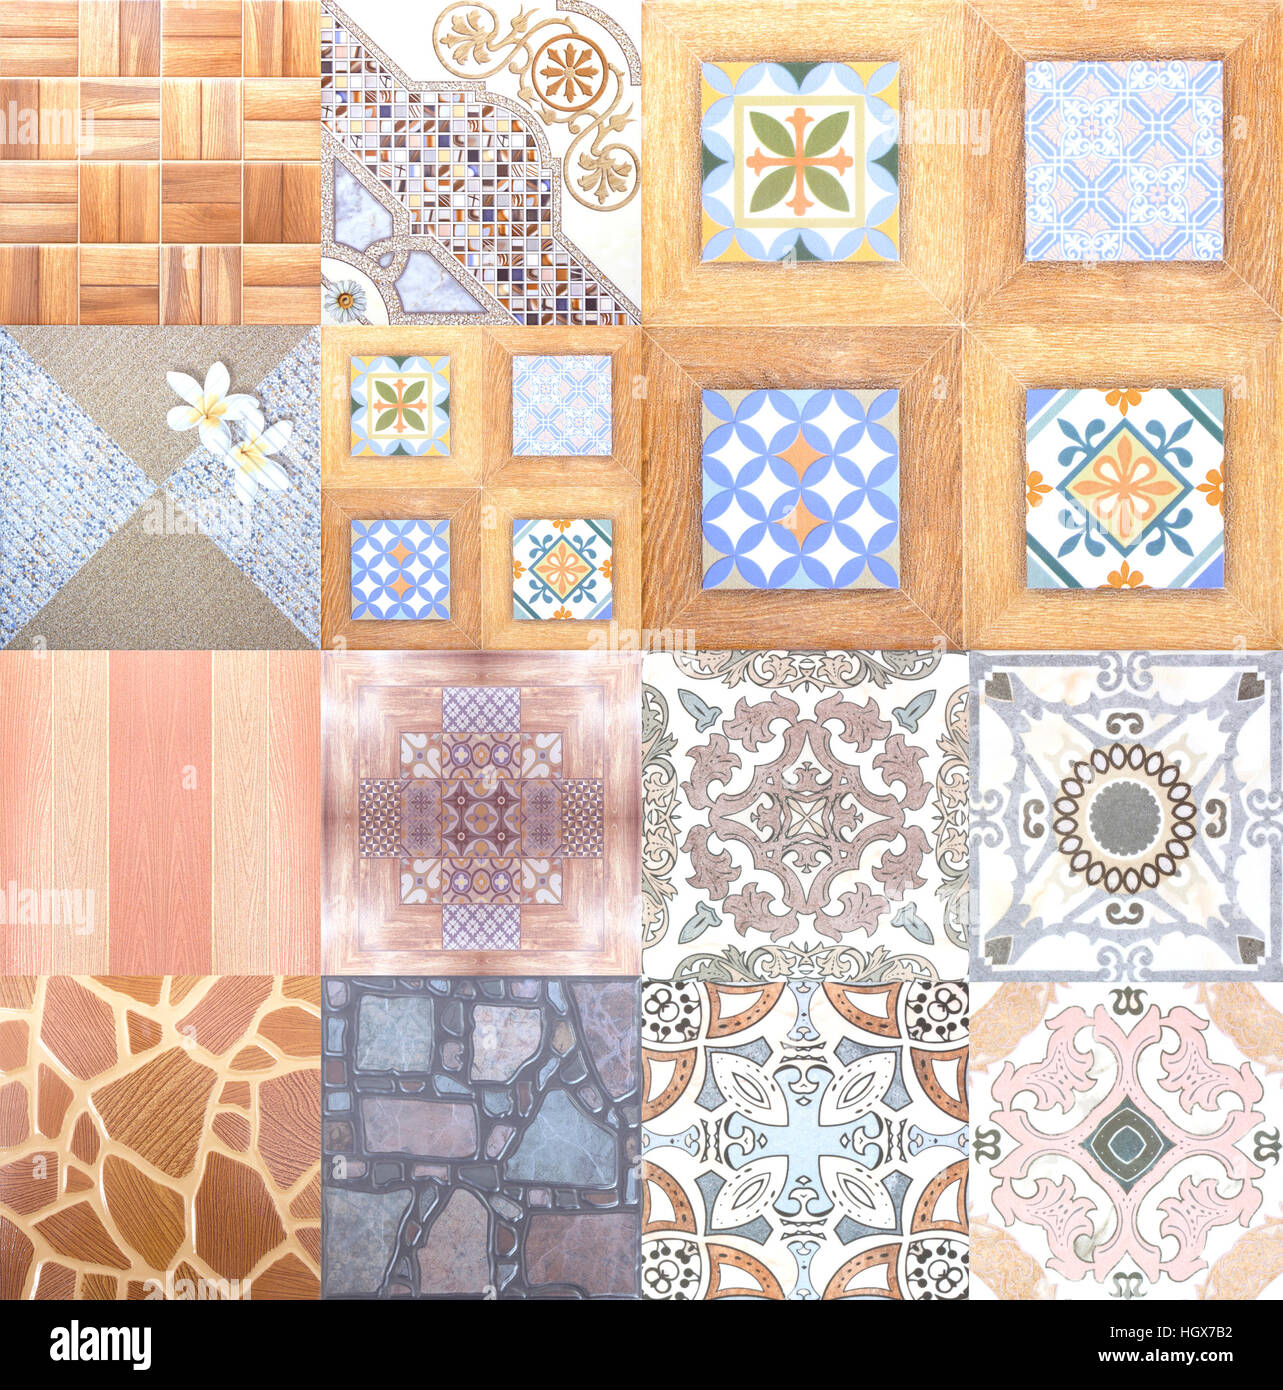 Ceramic Floor and Wall Tile background building construction - Stock Image